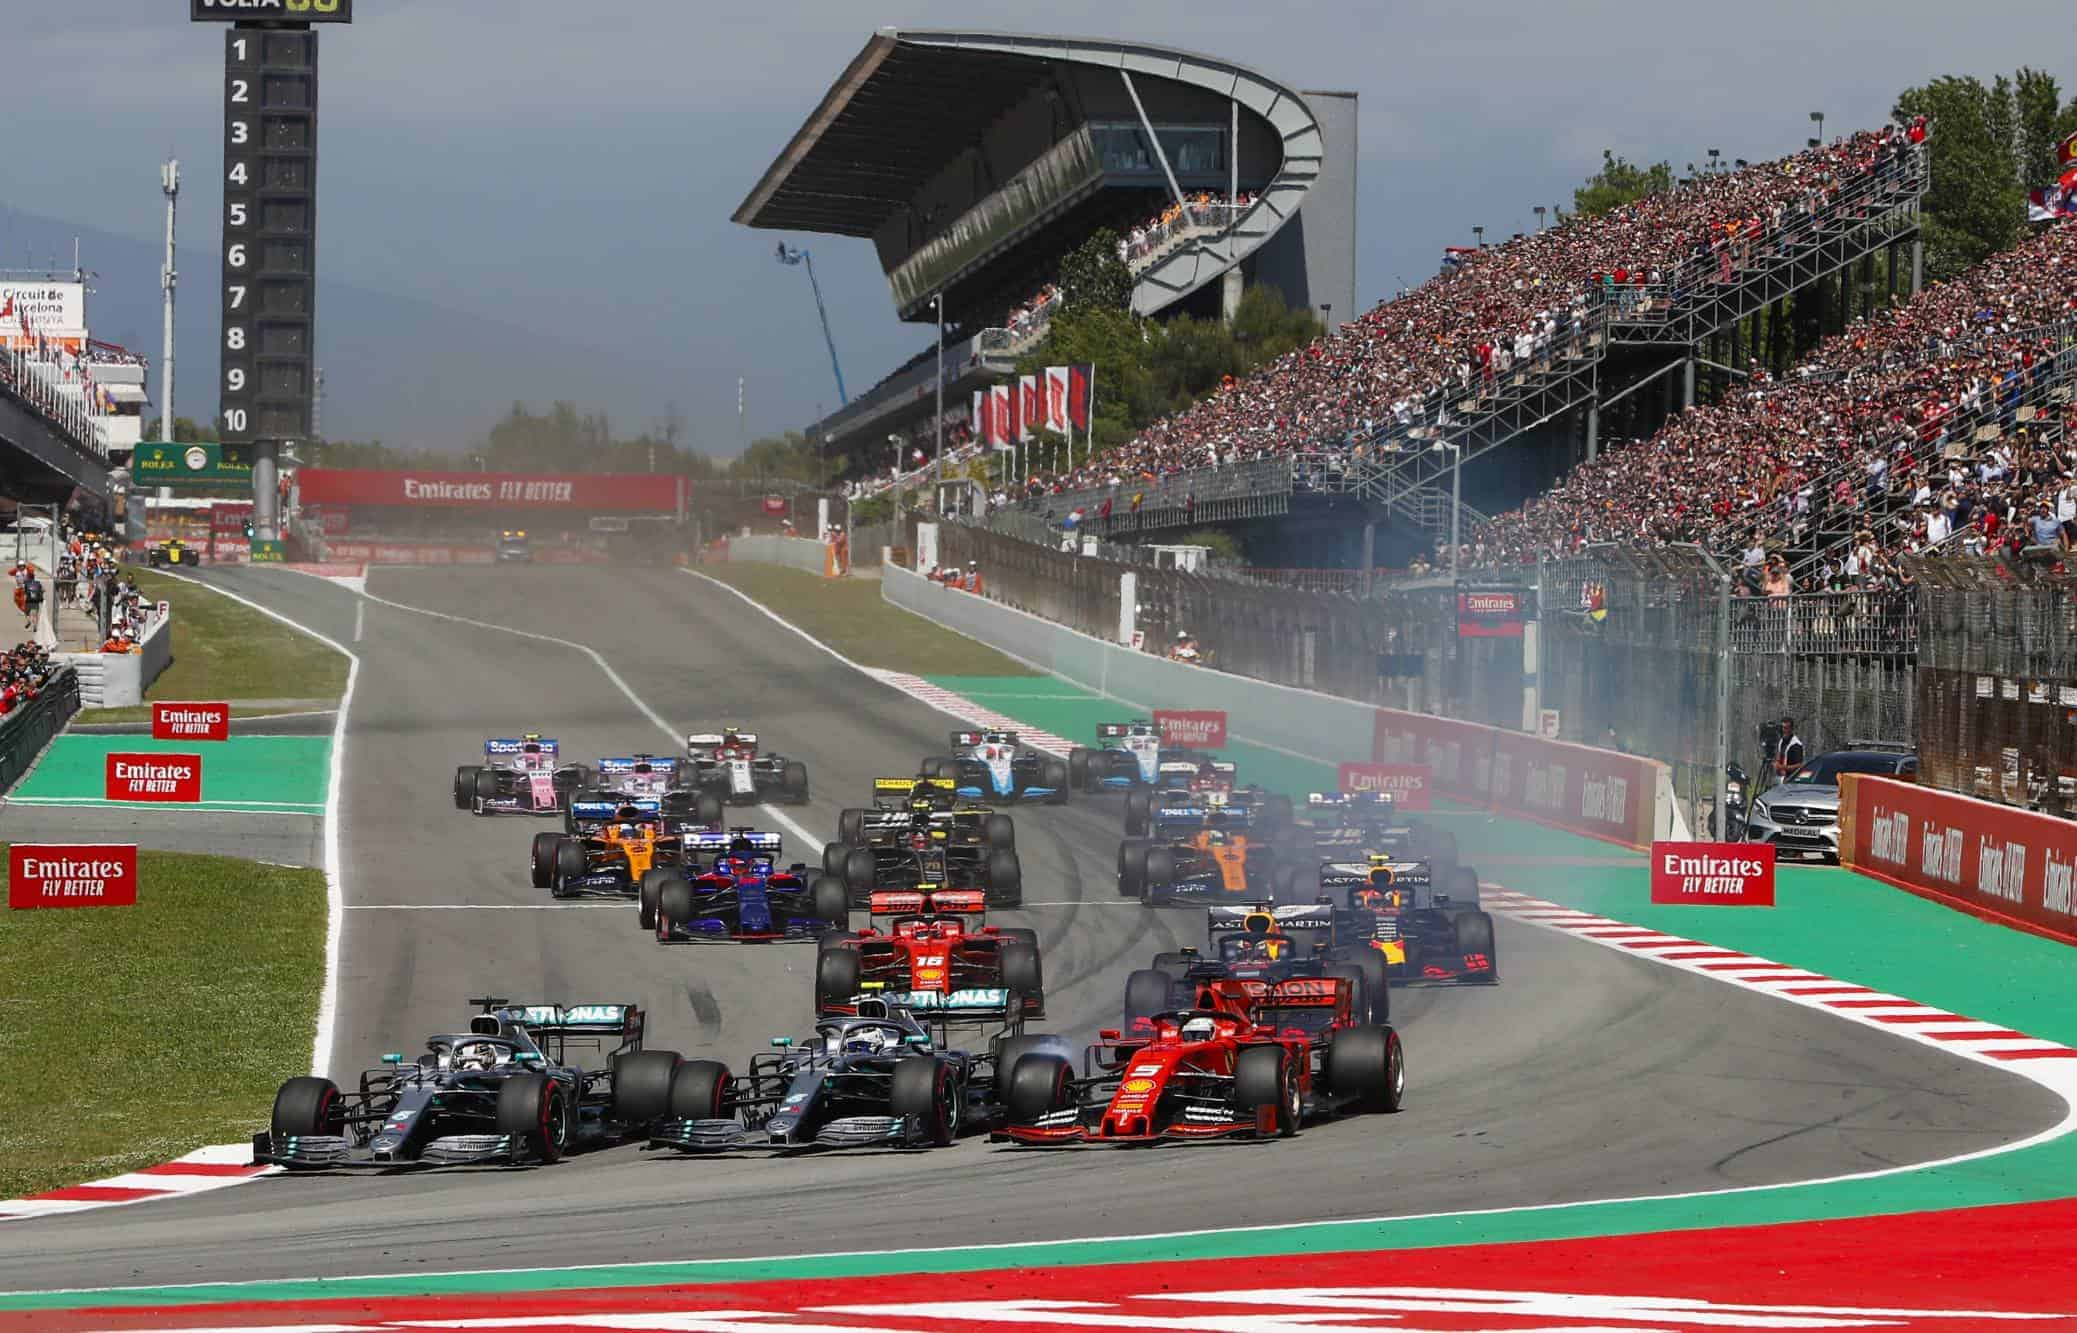 2019 Spanish GP start Photo Daimler